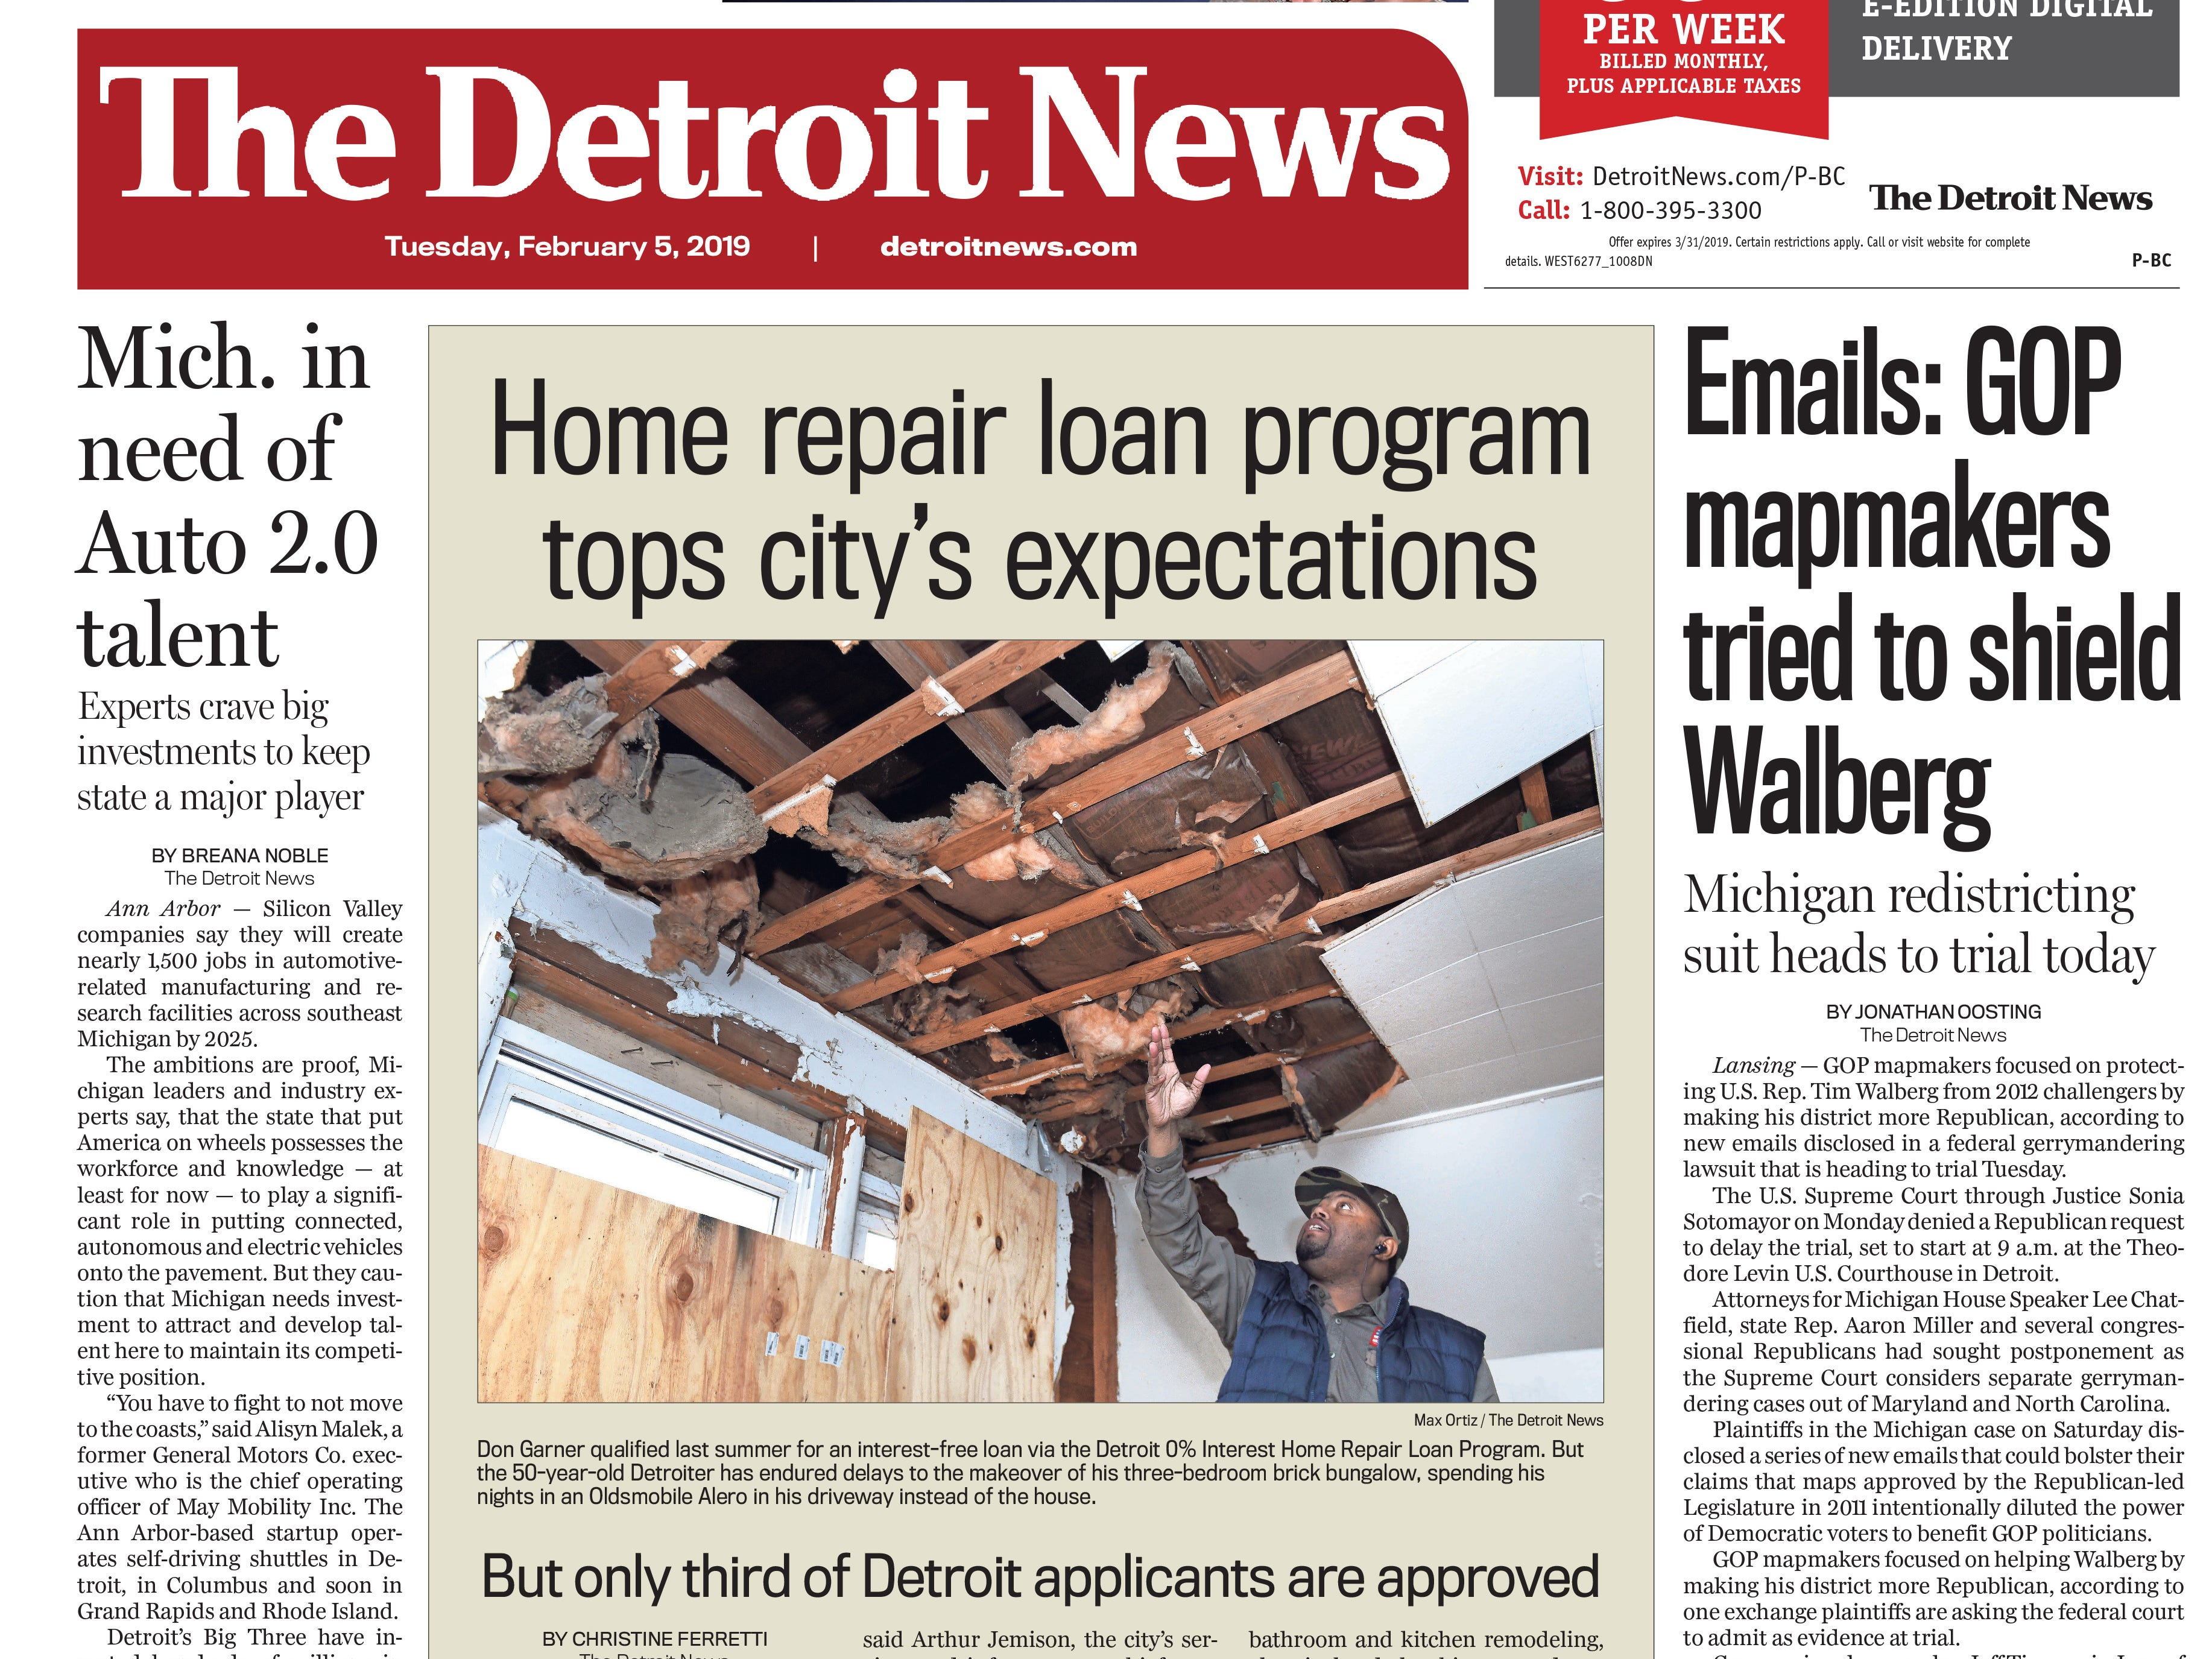 The front page of the Detroit News on Tuesday, February 5, 2019.